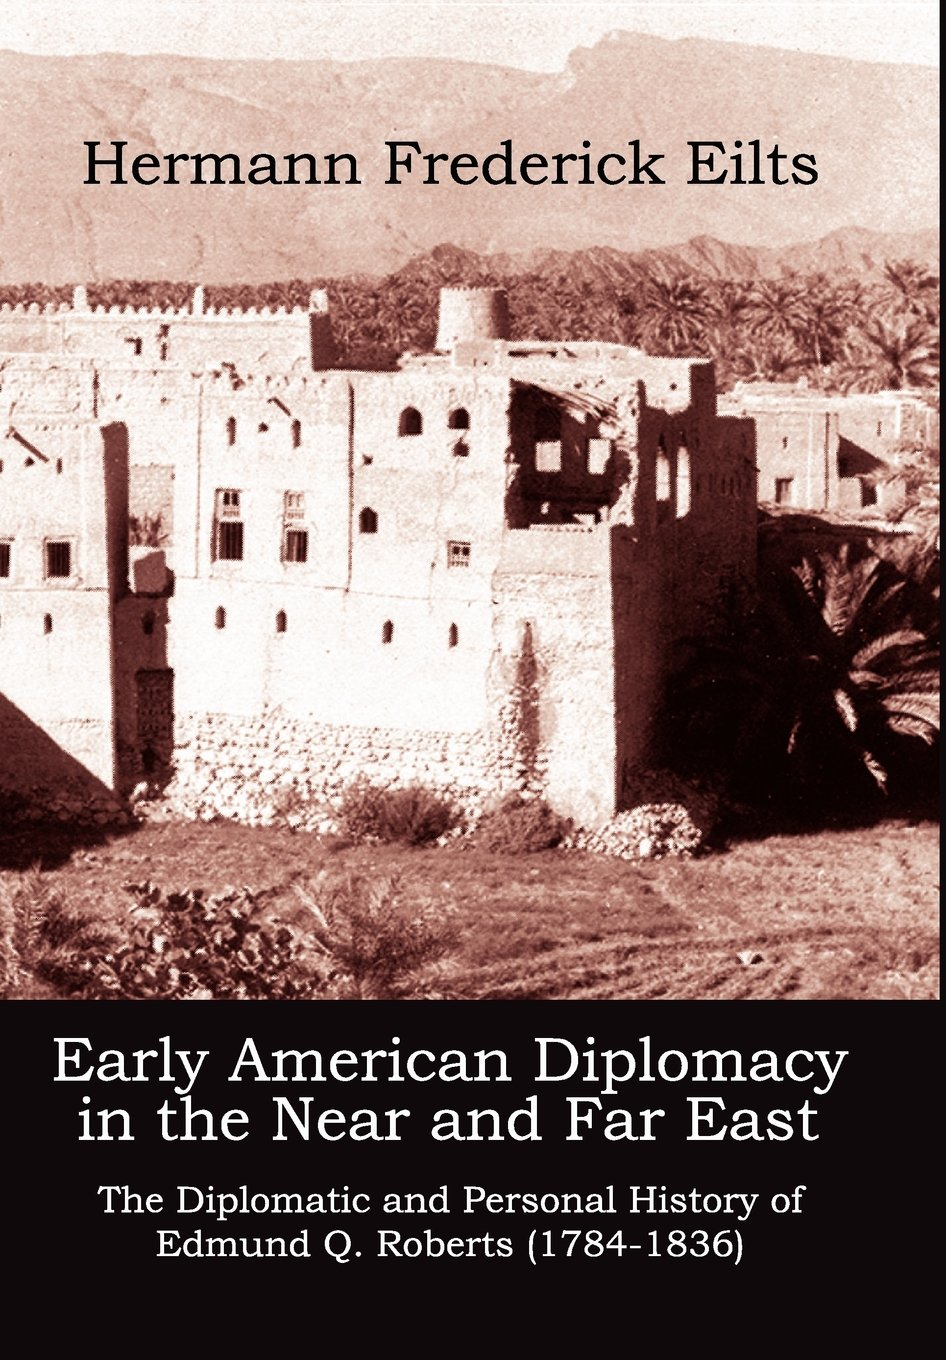 Download Early American Diplomacy in the Near and Far East: The Diplomatic and Personal History of Edmund Q. Roberts (1784-1836) (ADST-DACOR Diplomats and Diplomacy) pdf epub